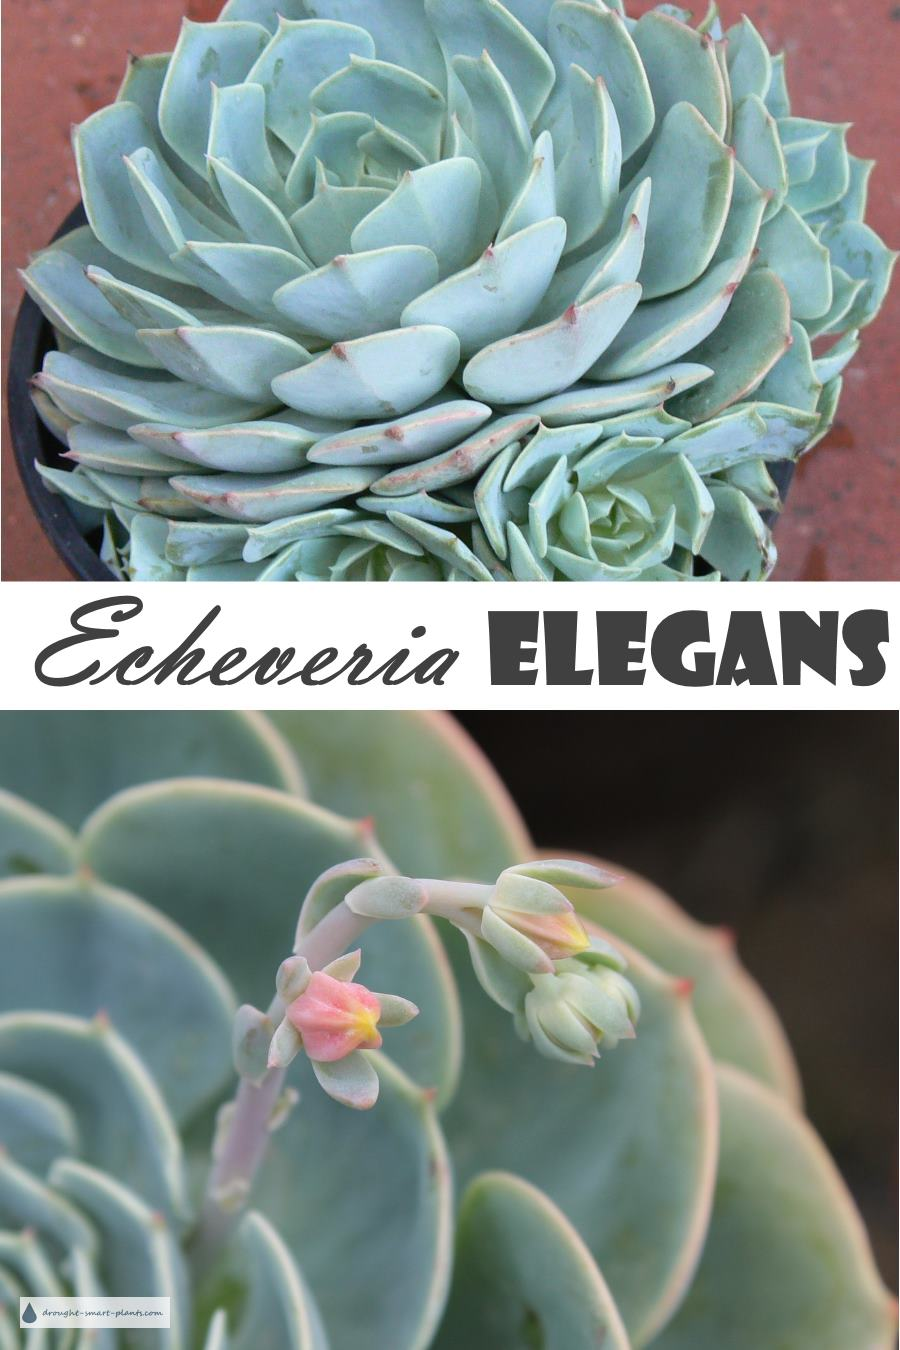 Echeveria Elegans The Mexican Hens And Chicks